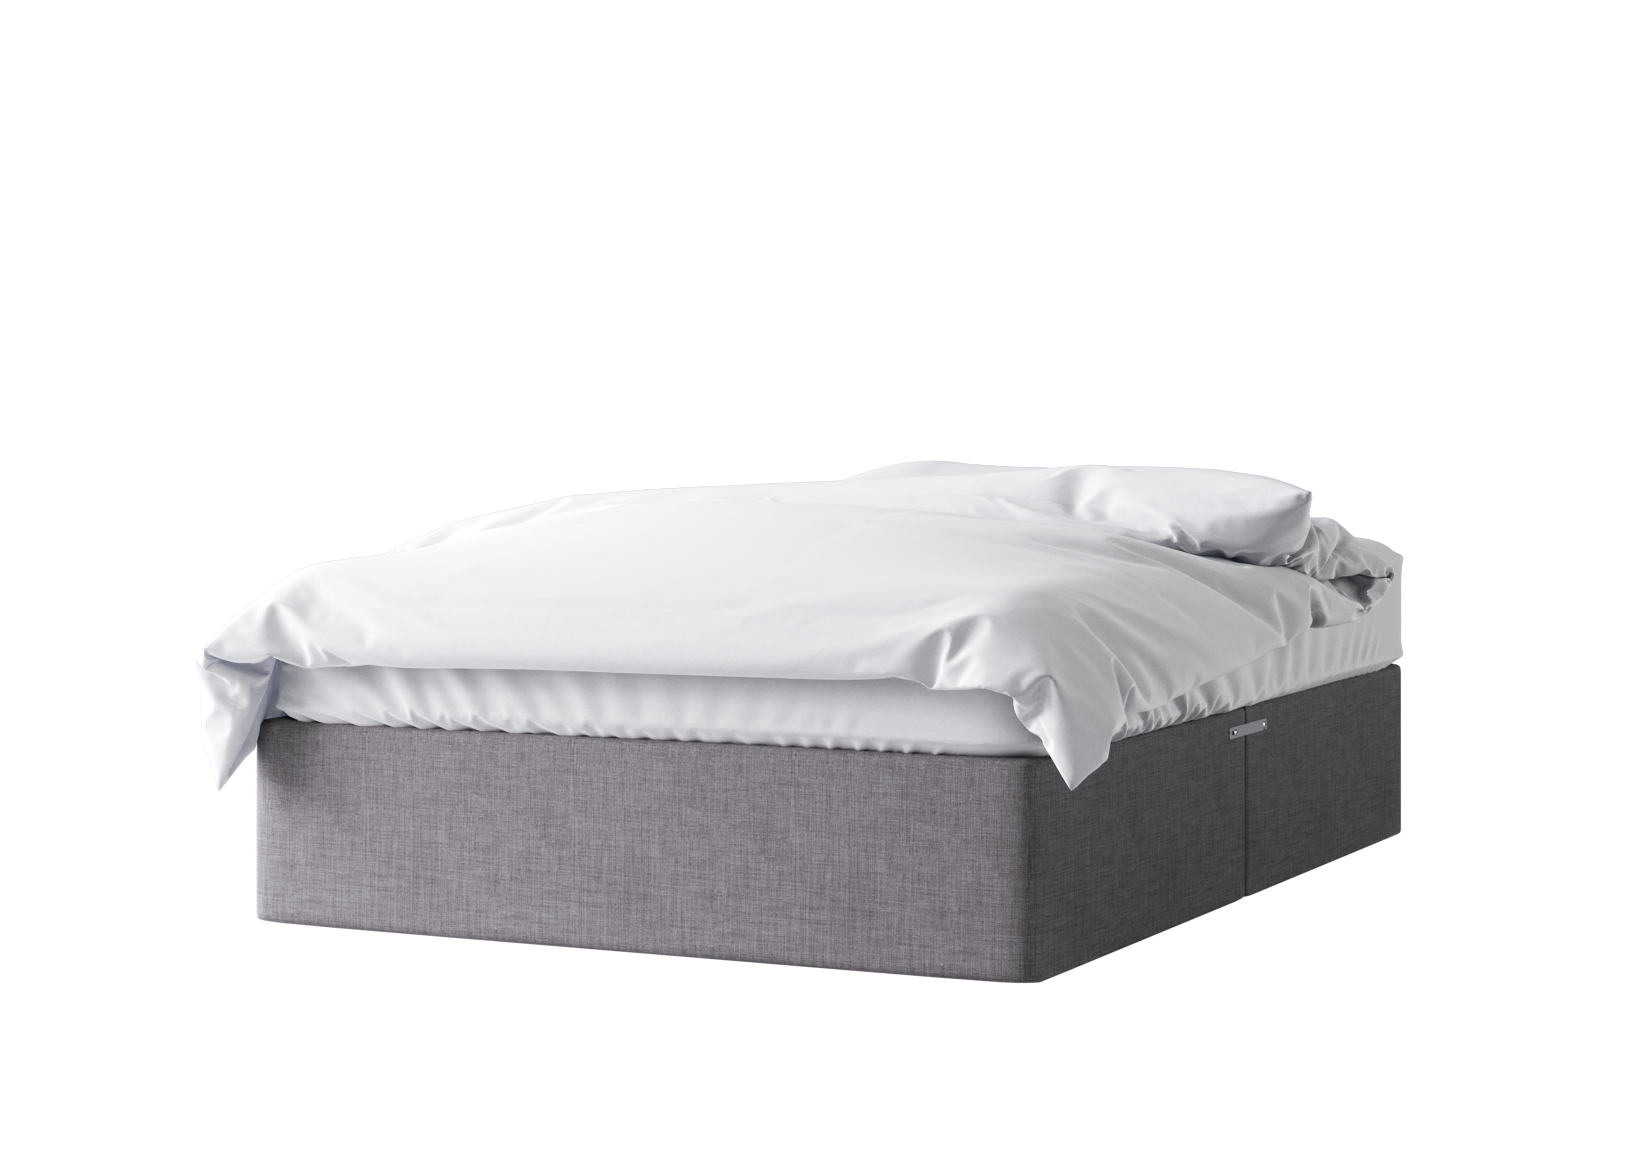 Ortho royale orthopaedic divan. Quilt clipart double bed